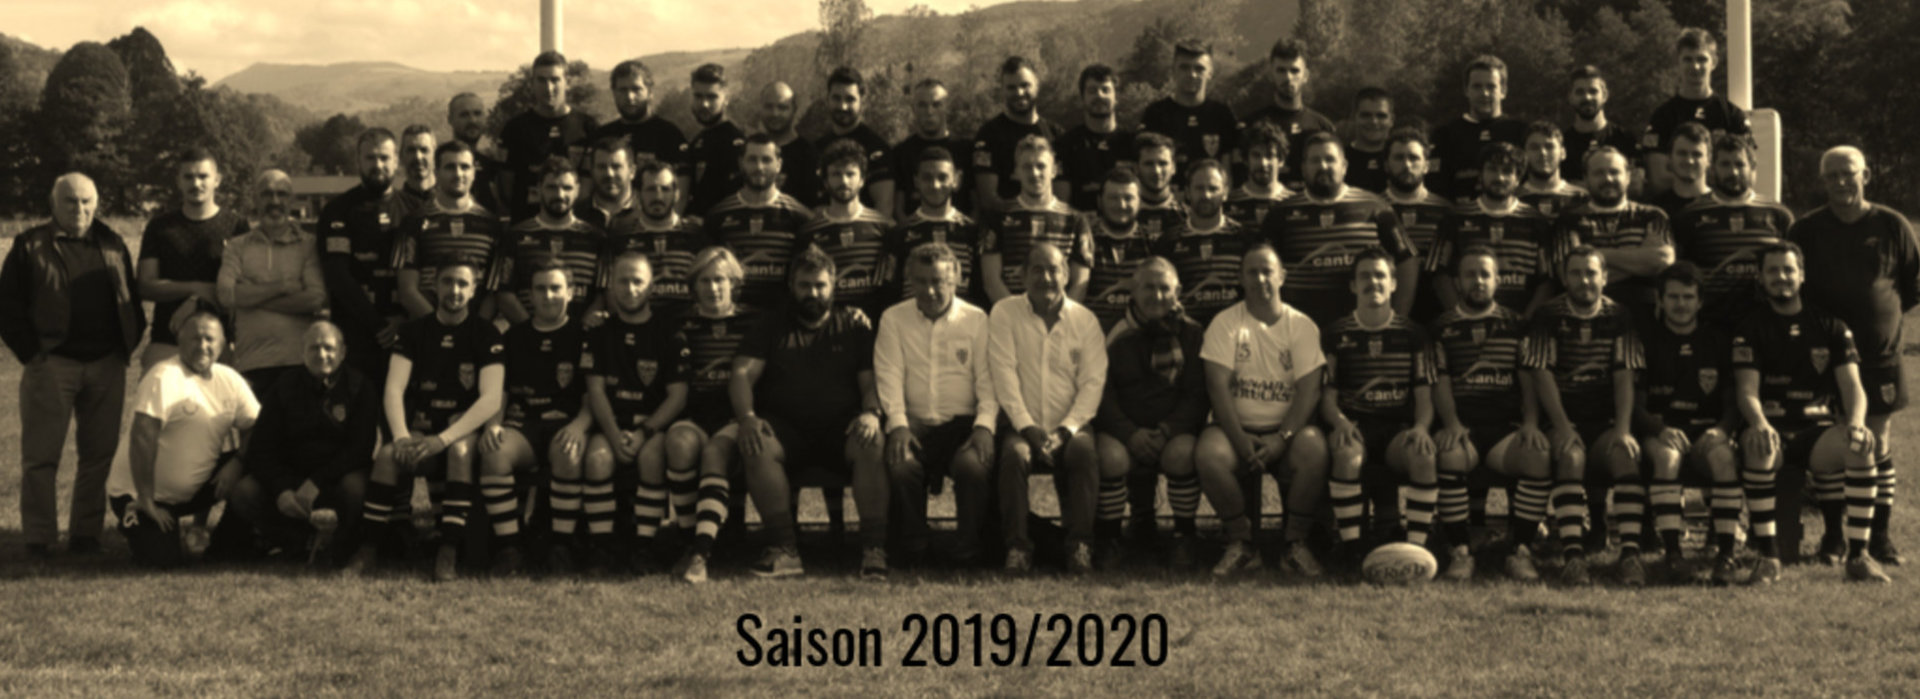 Racing Club RC Saint Simon Cantal Auvergne